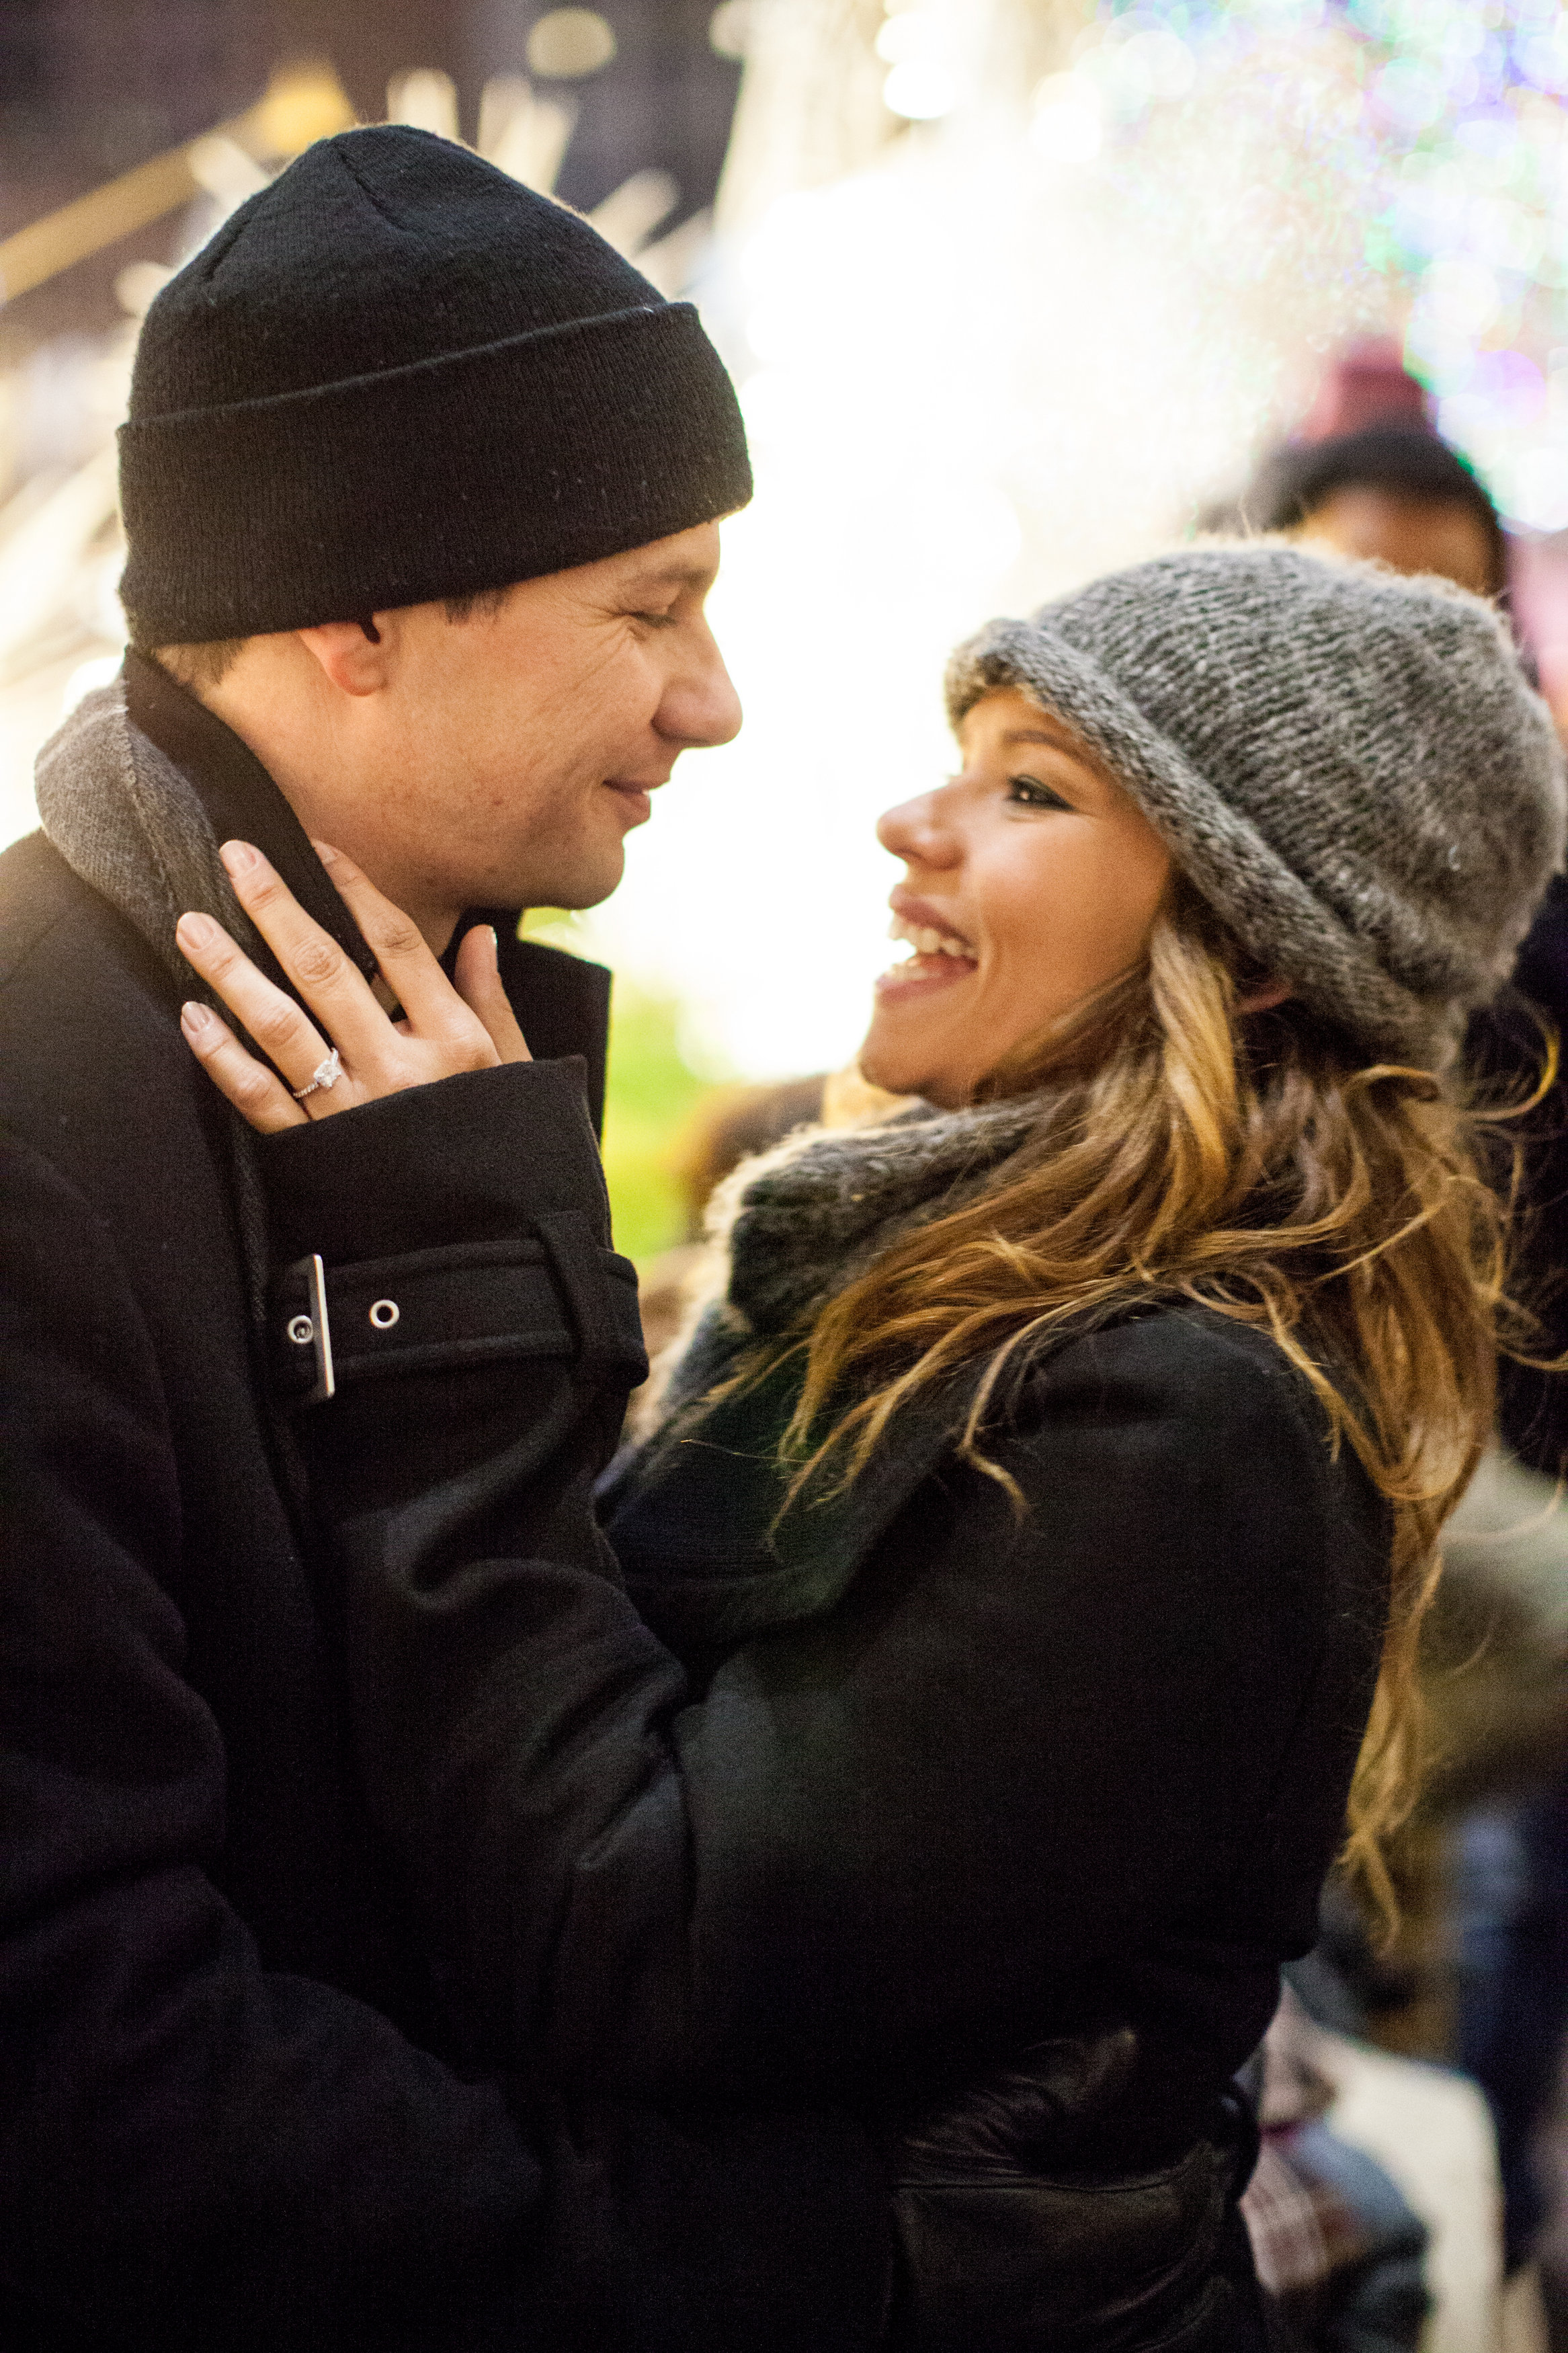 Image 12 of Christmas Day Proposal at Rockefeller Plaza